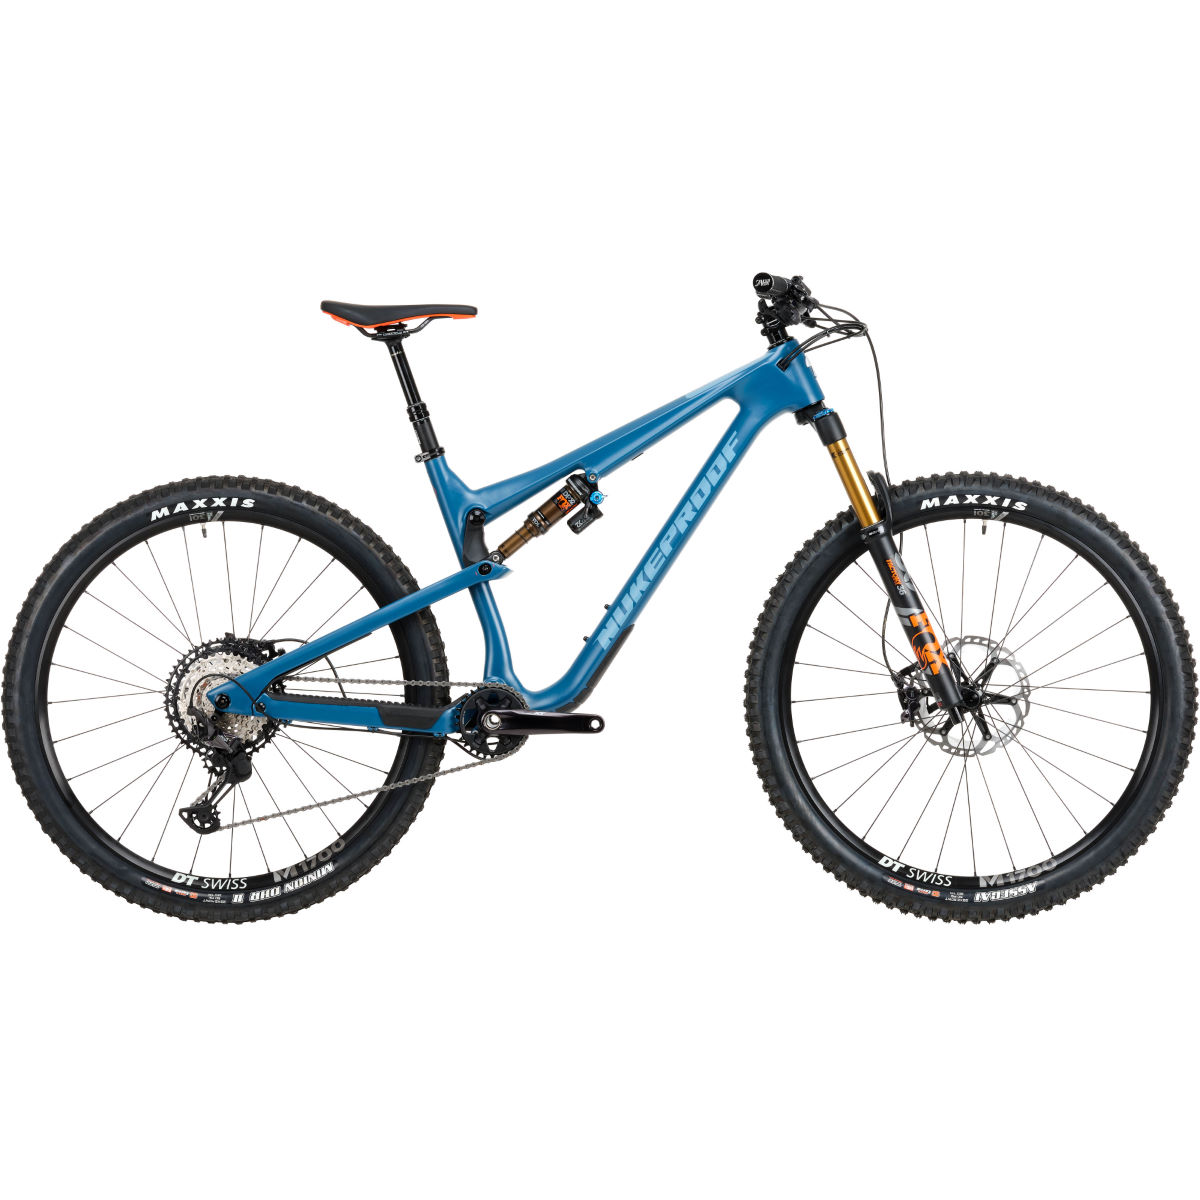 Nukeproof Nukeproof Reactor 290 Factory Carbon Bike (XT - 2020)   Full Suspension Mountain Bikes